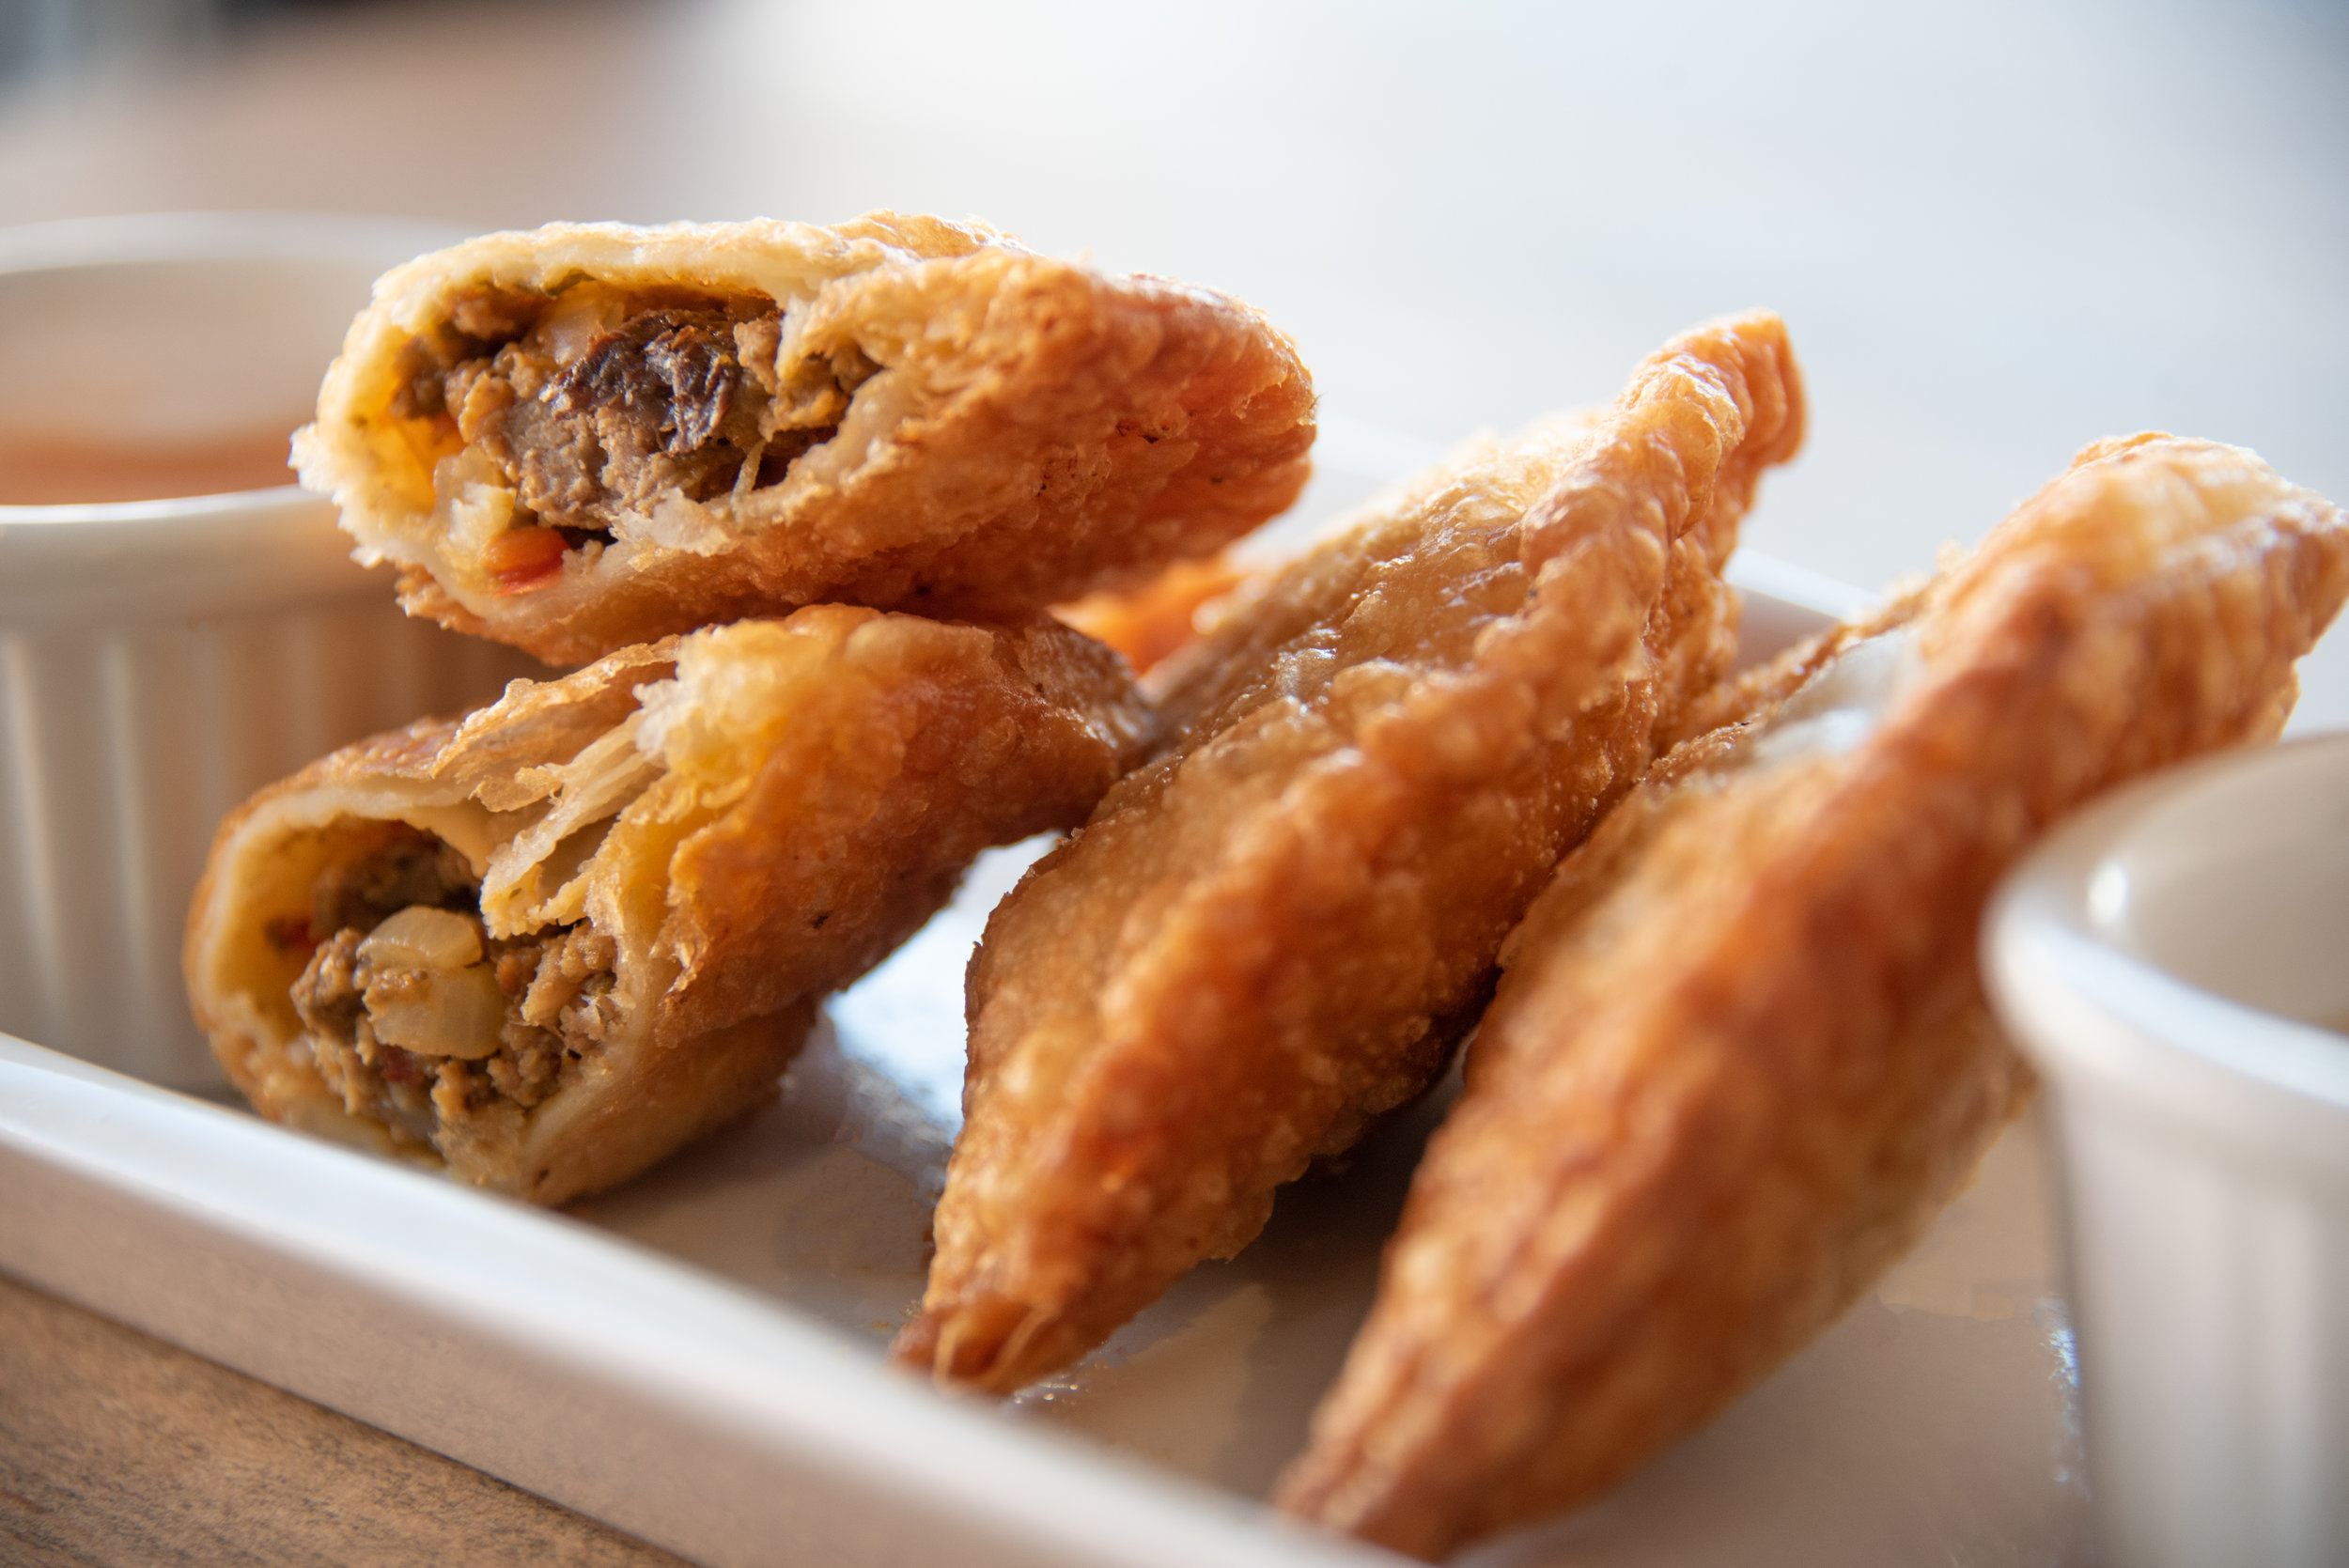 Authentic Puerto Rican Pastelillos - Turnovers with various savory fillings of your choice